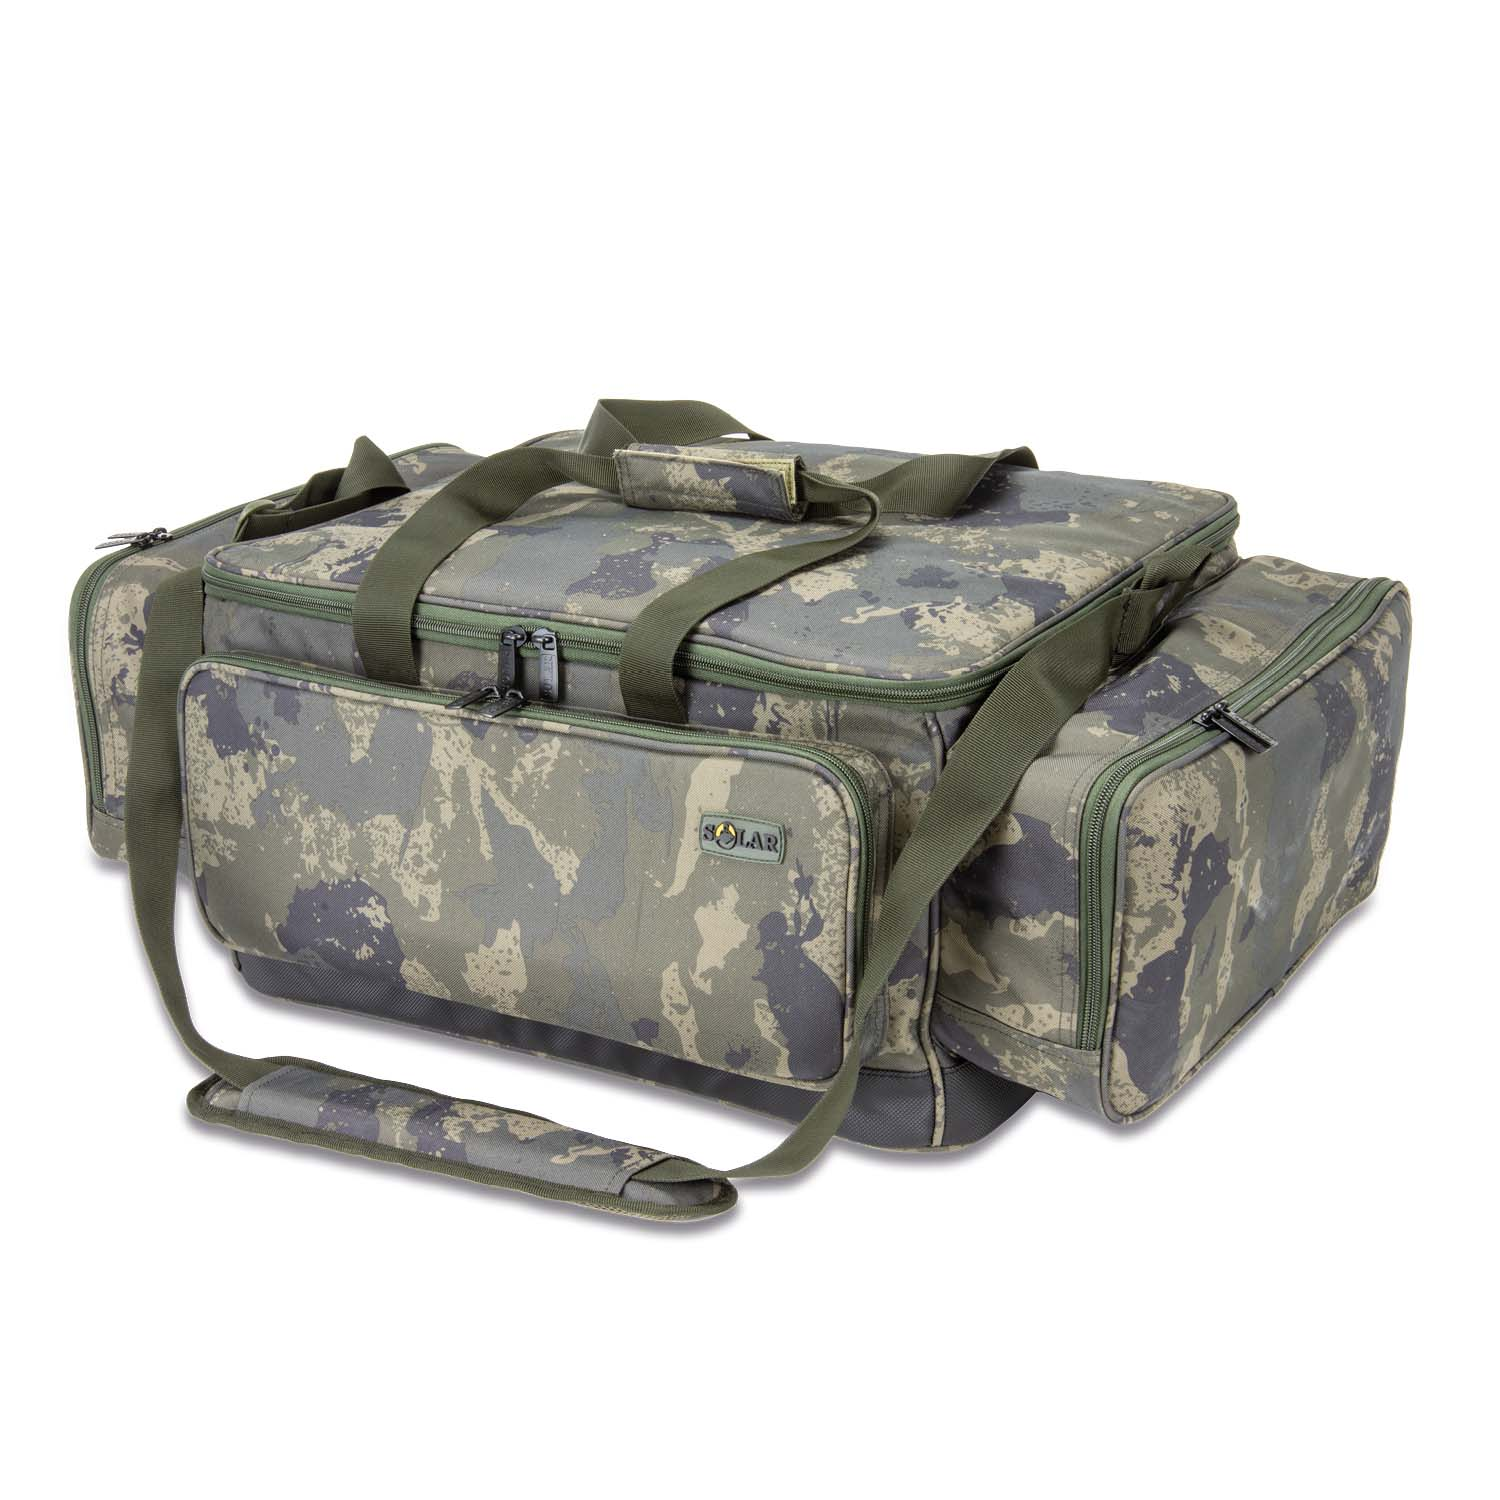 Solar New Undercover CarryAll Large